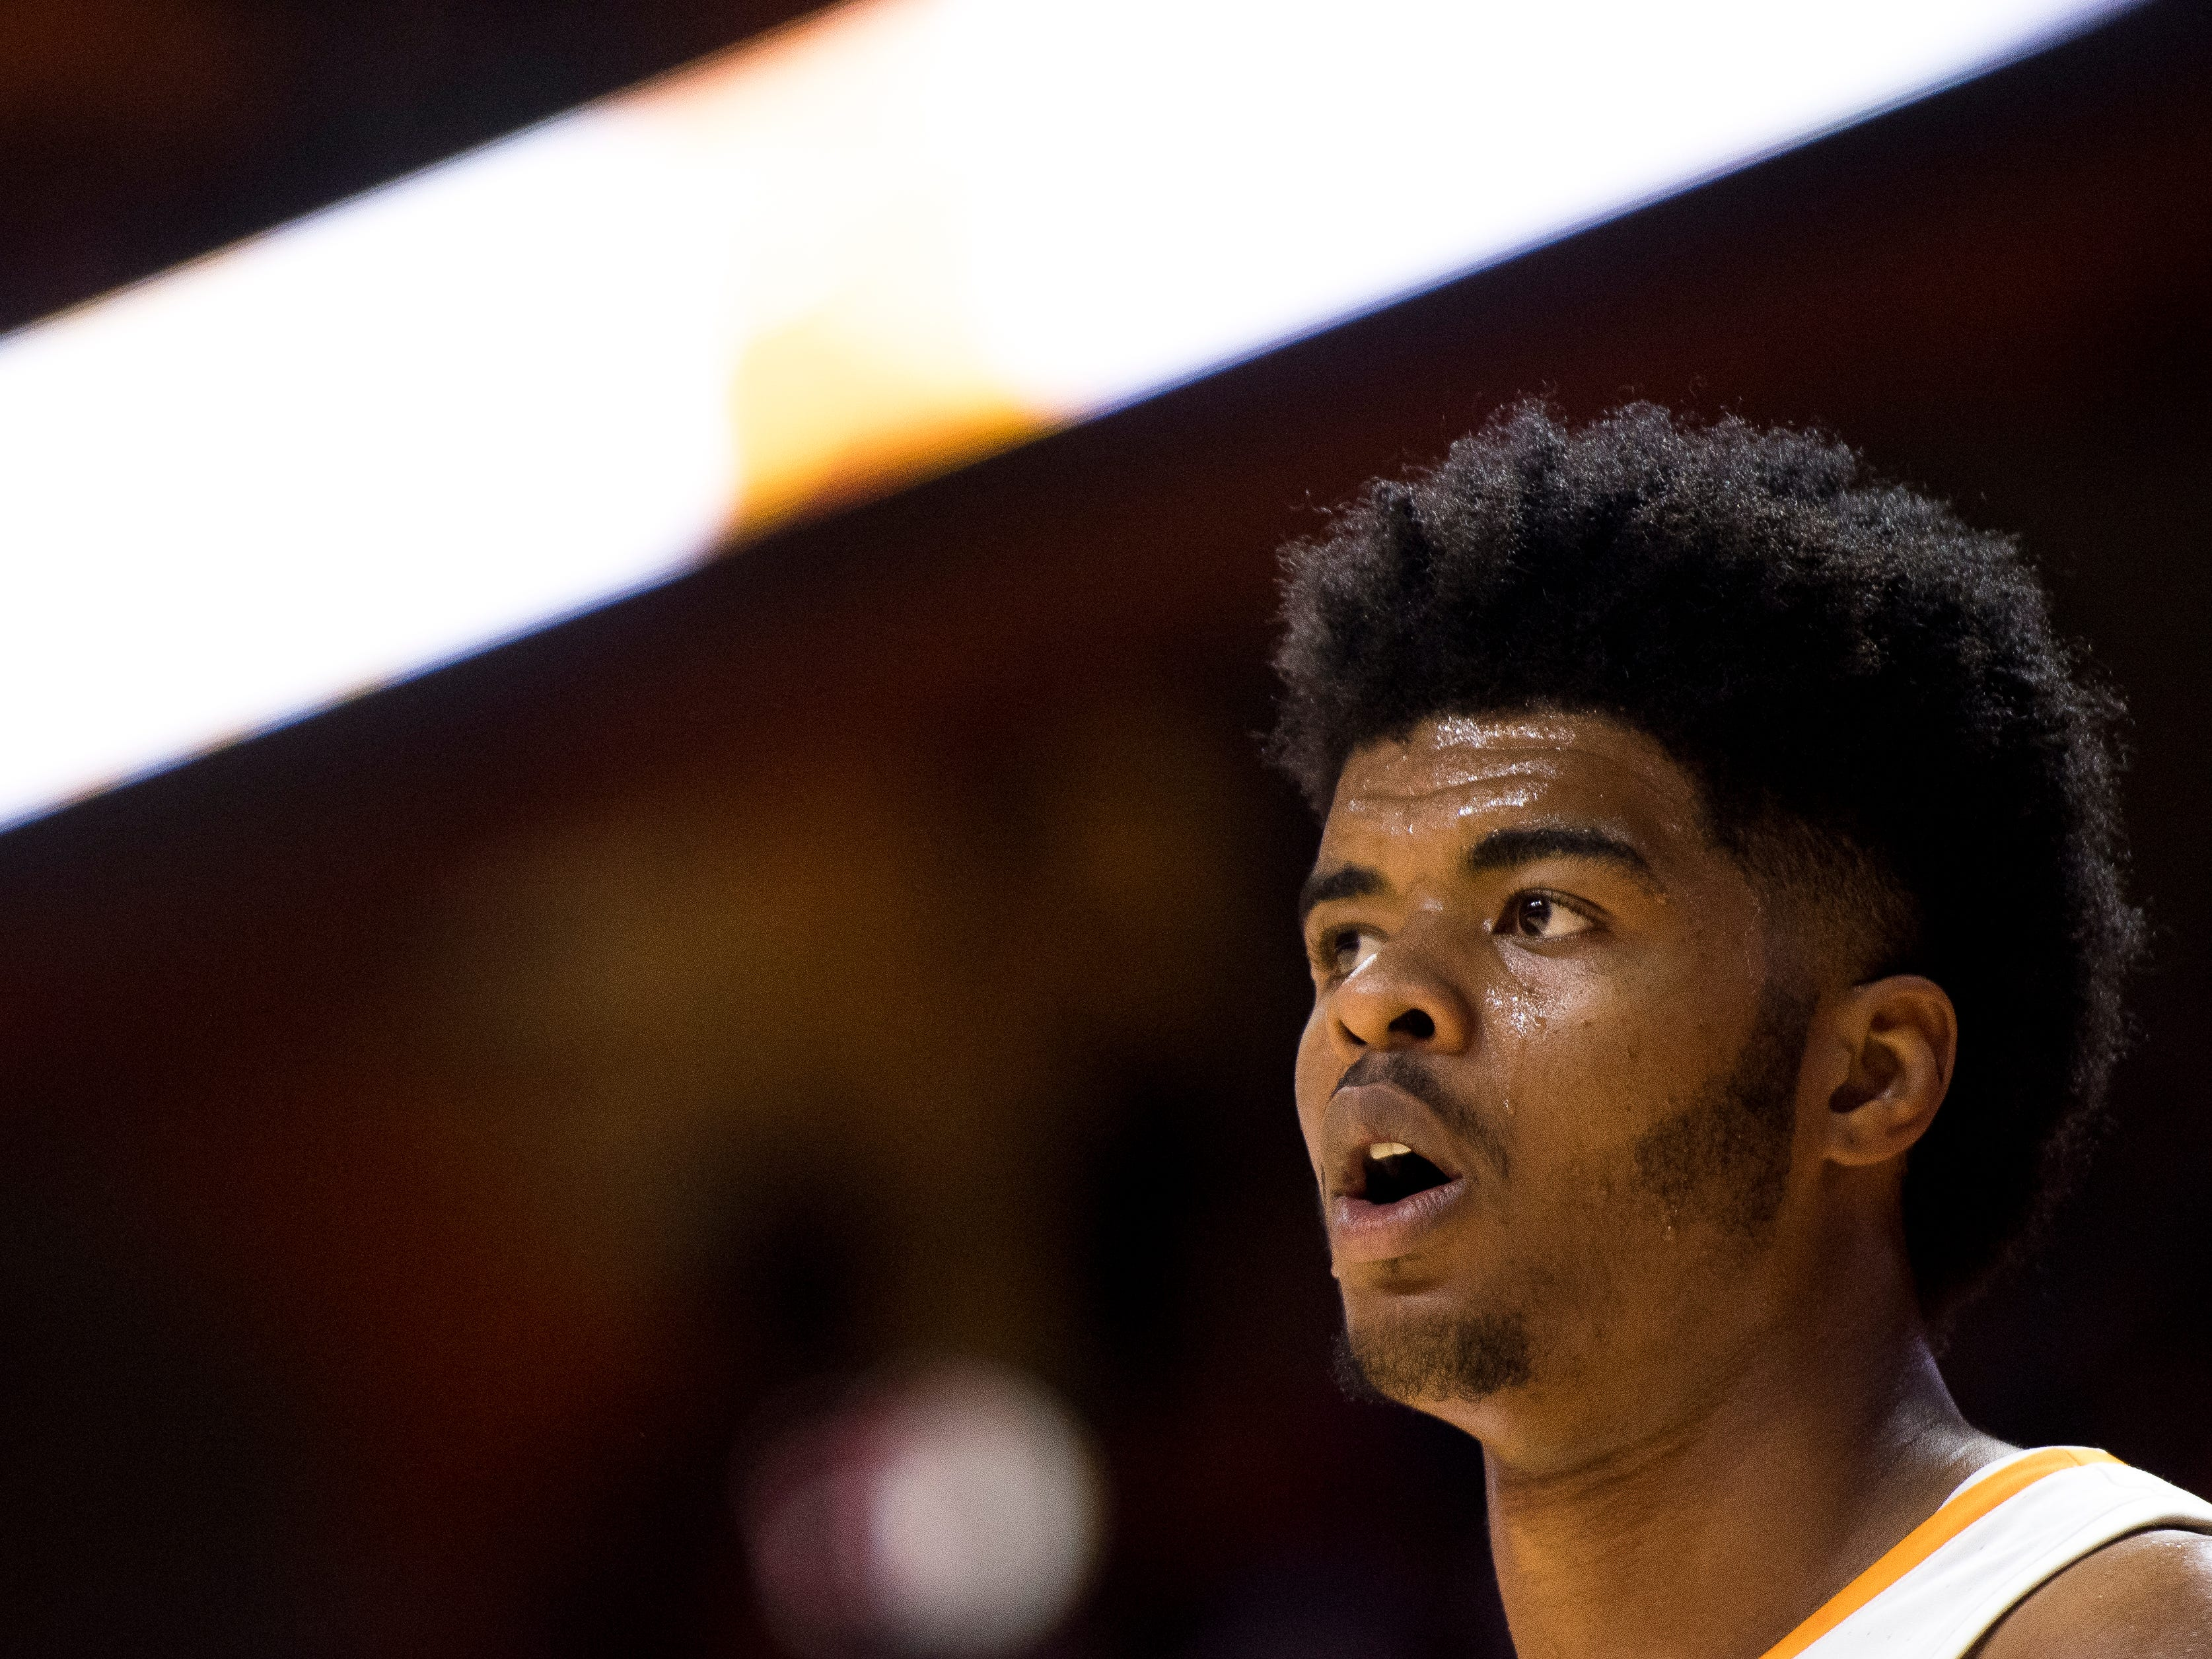 Tennessee forward Derrick Walker (15) during Tennessee's basketball game against Lenoir-Rhyne at Thompson-Boling Arena in Knoxville on Tuesday, November 6, 2018.